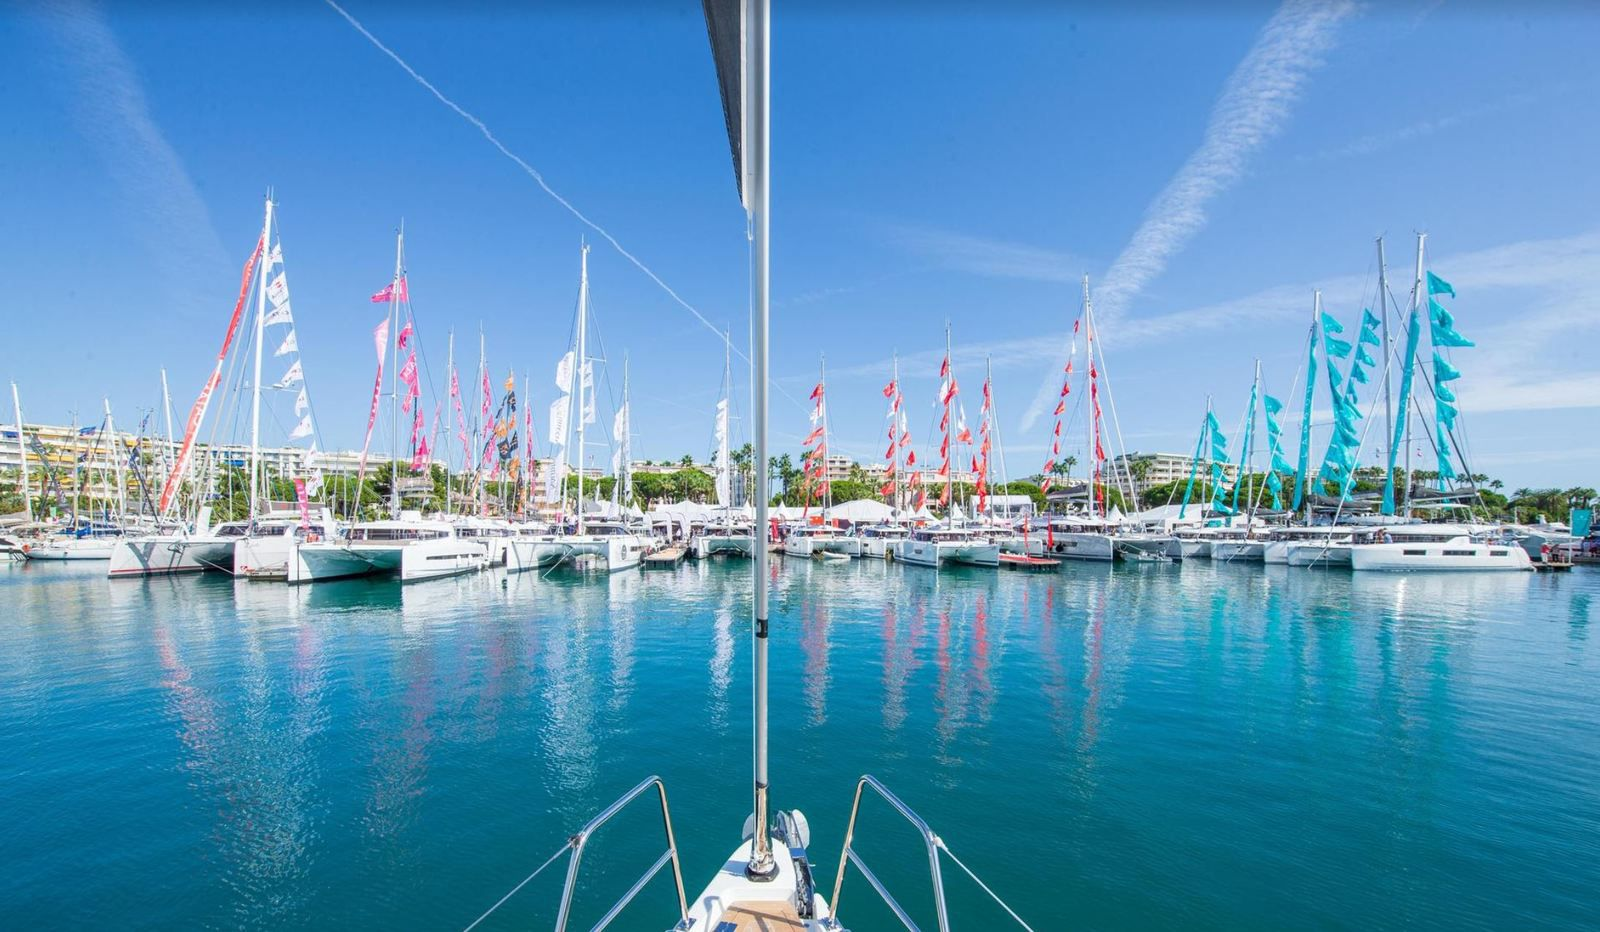 Yachting Festival 2020 obtains the Safe and Clean Label